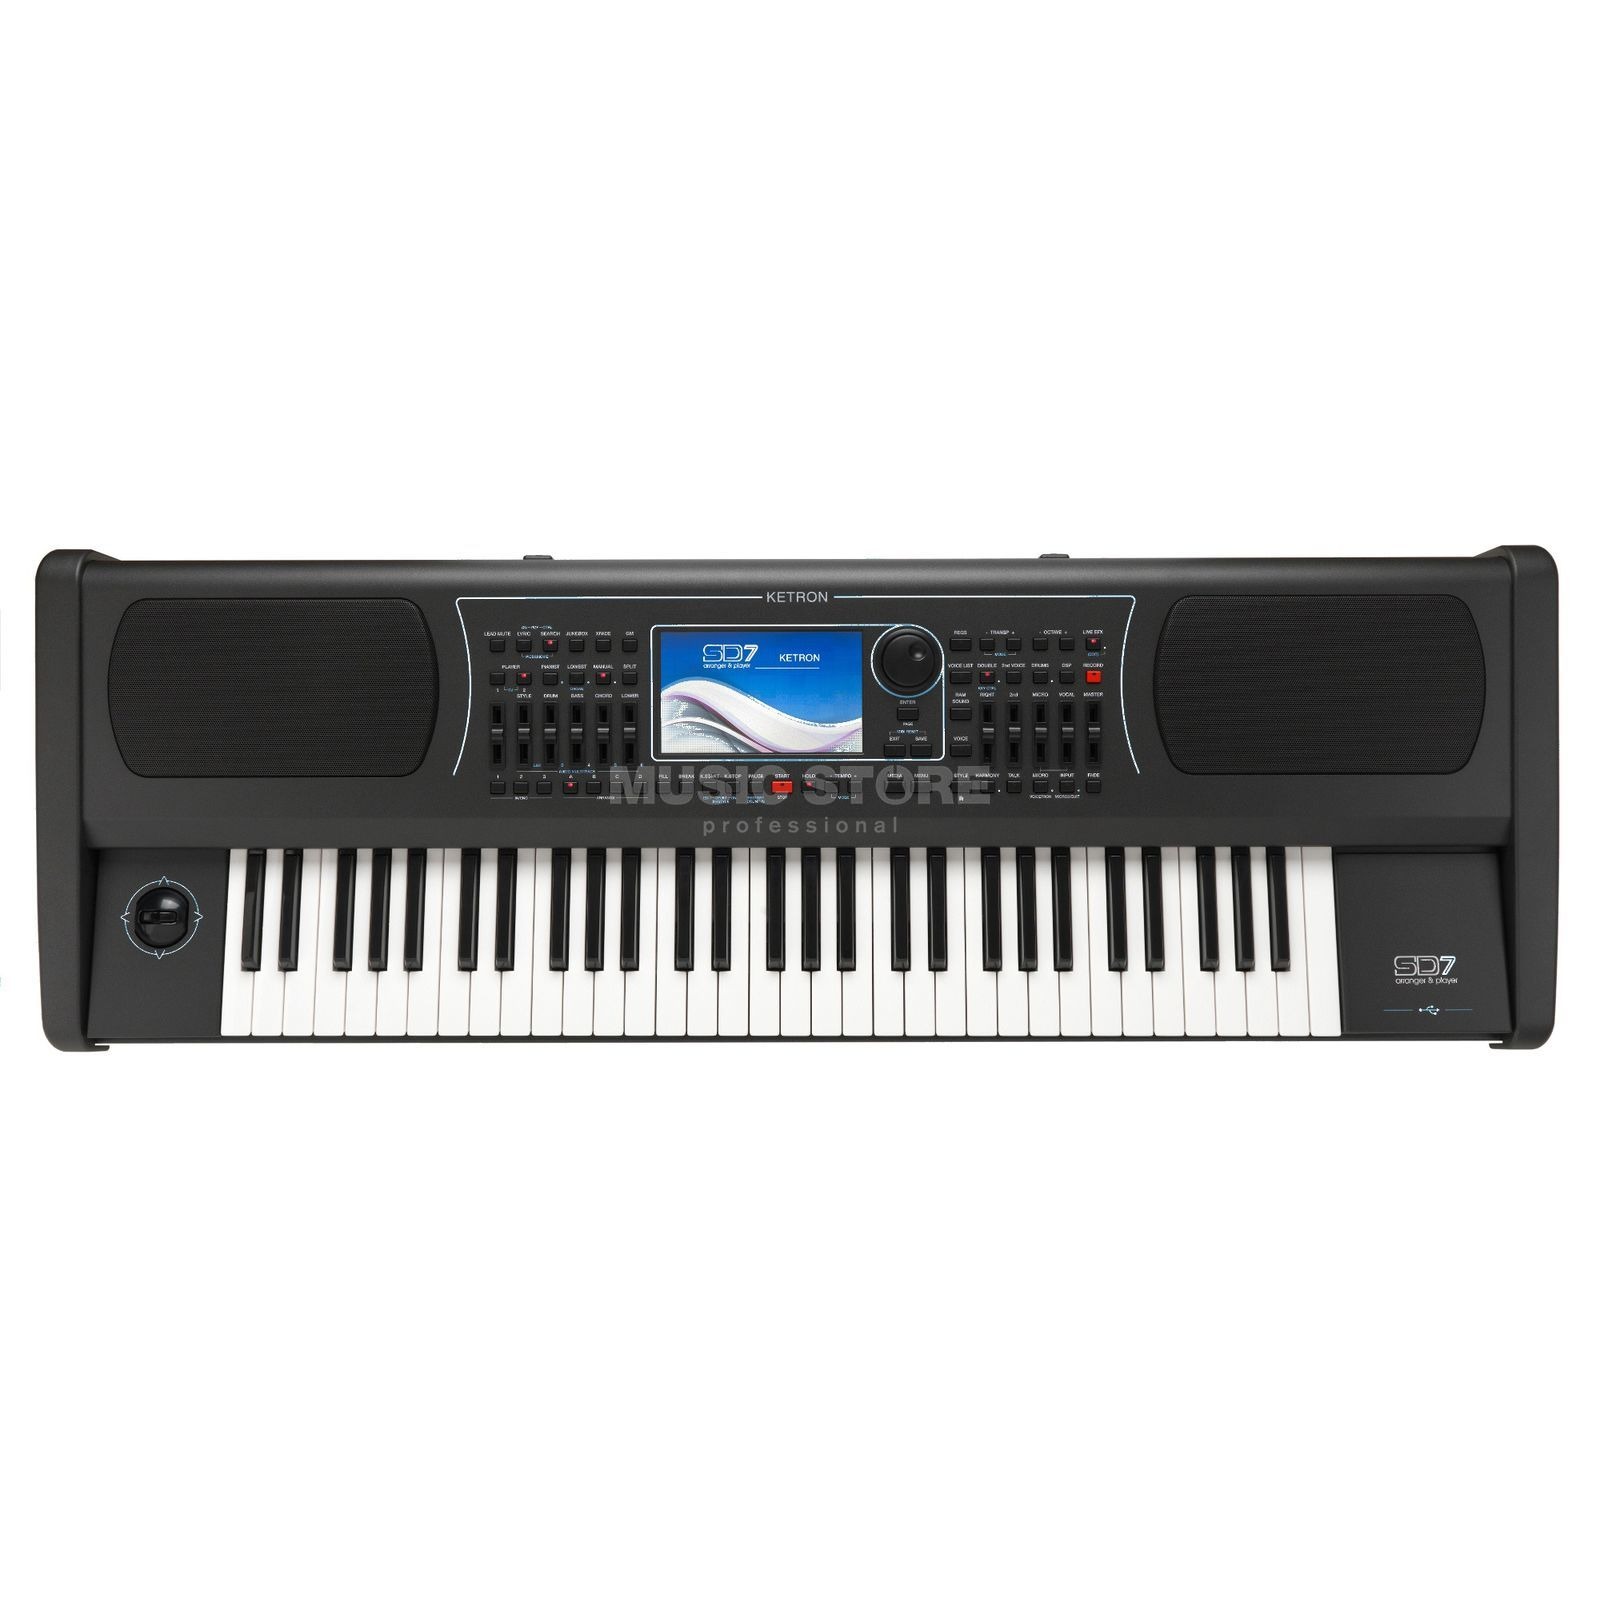 Ketron Ketron SD-7 Entertainer Keyboard Produktbild